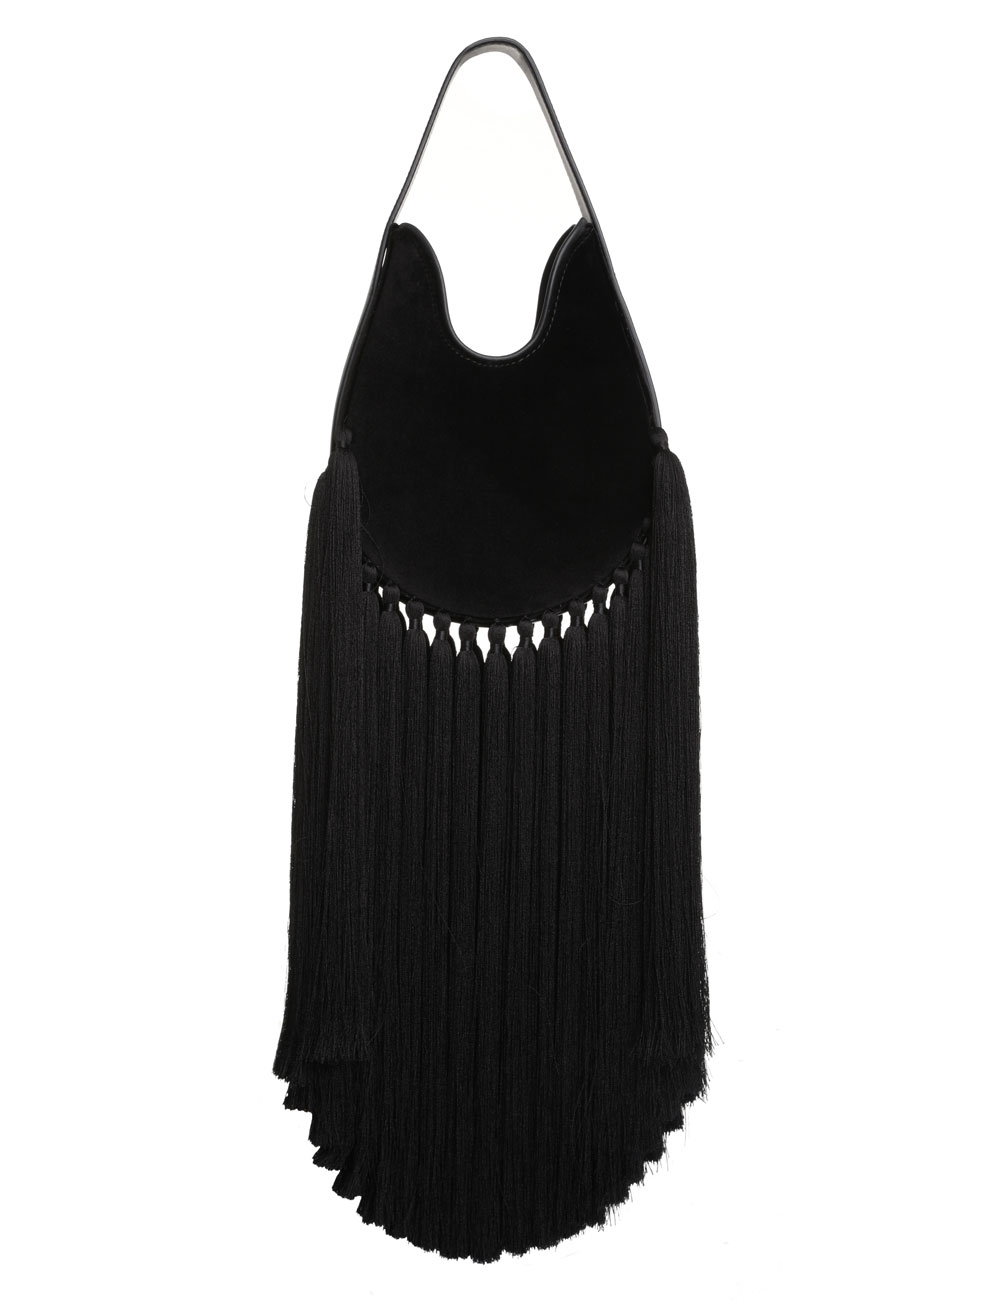 Small Velvet Fringe Hobo